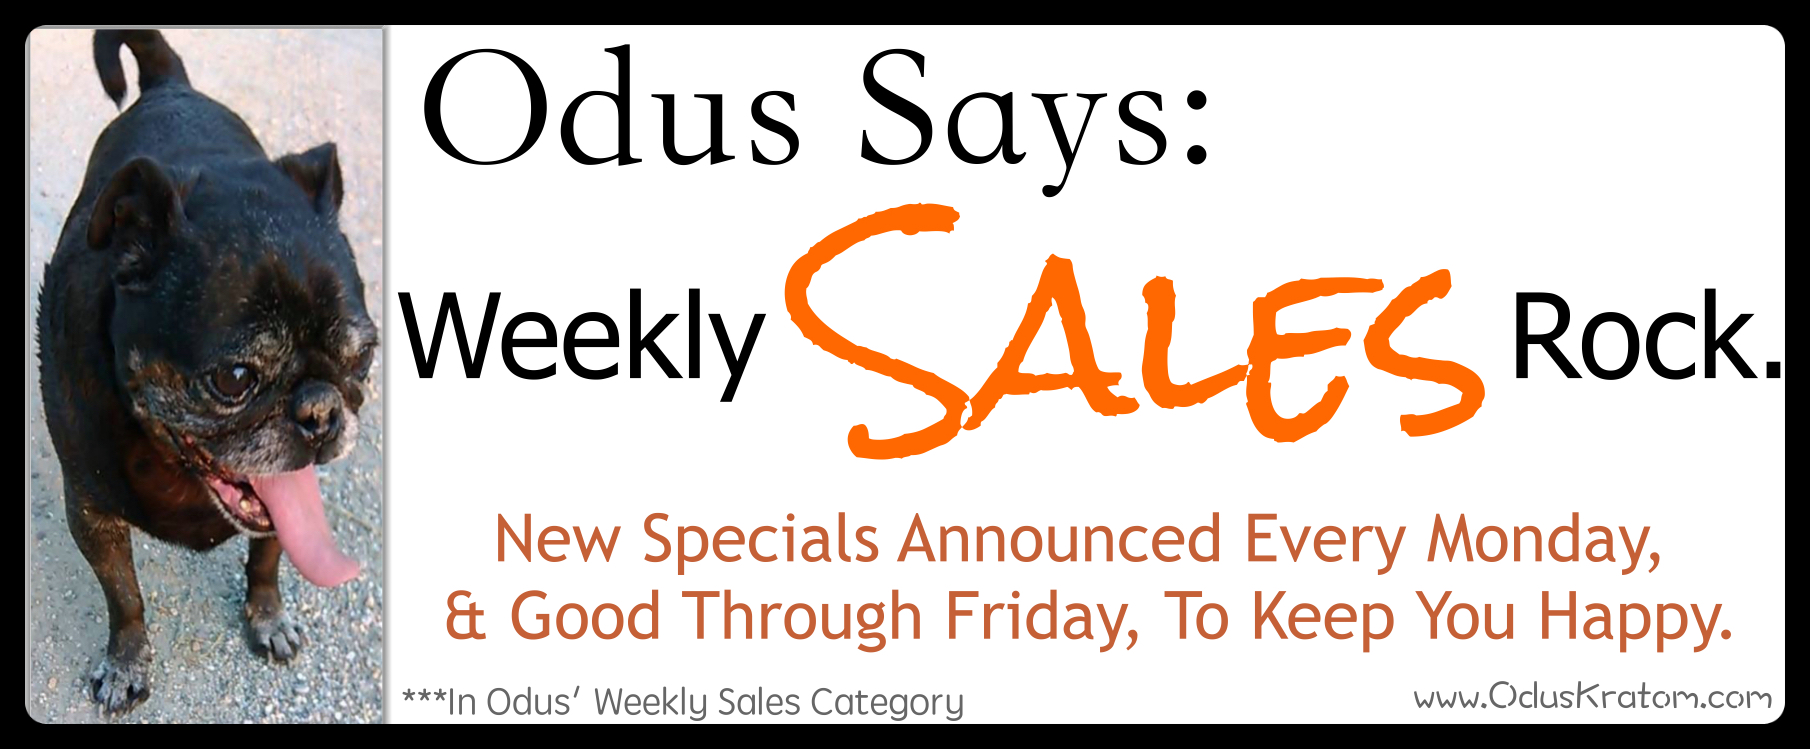 Weekly Sales At www.OdusKratom.com